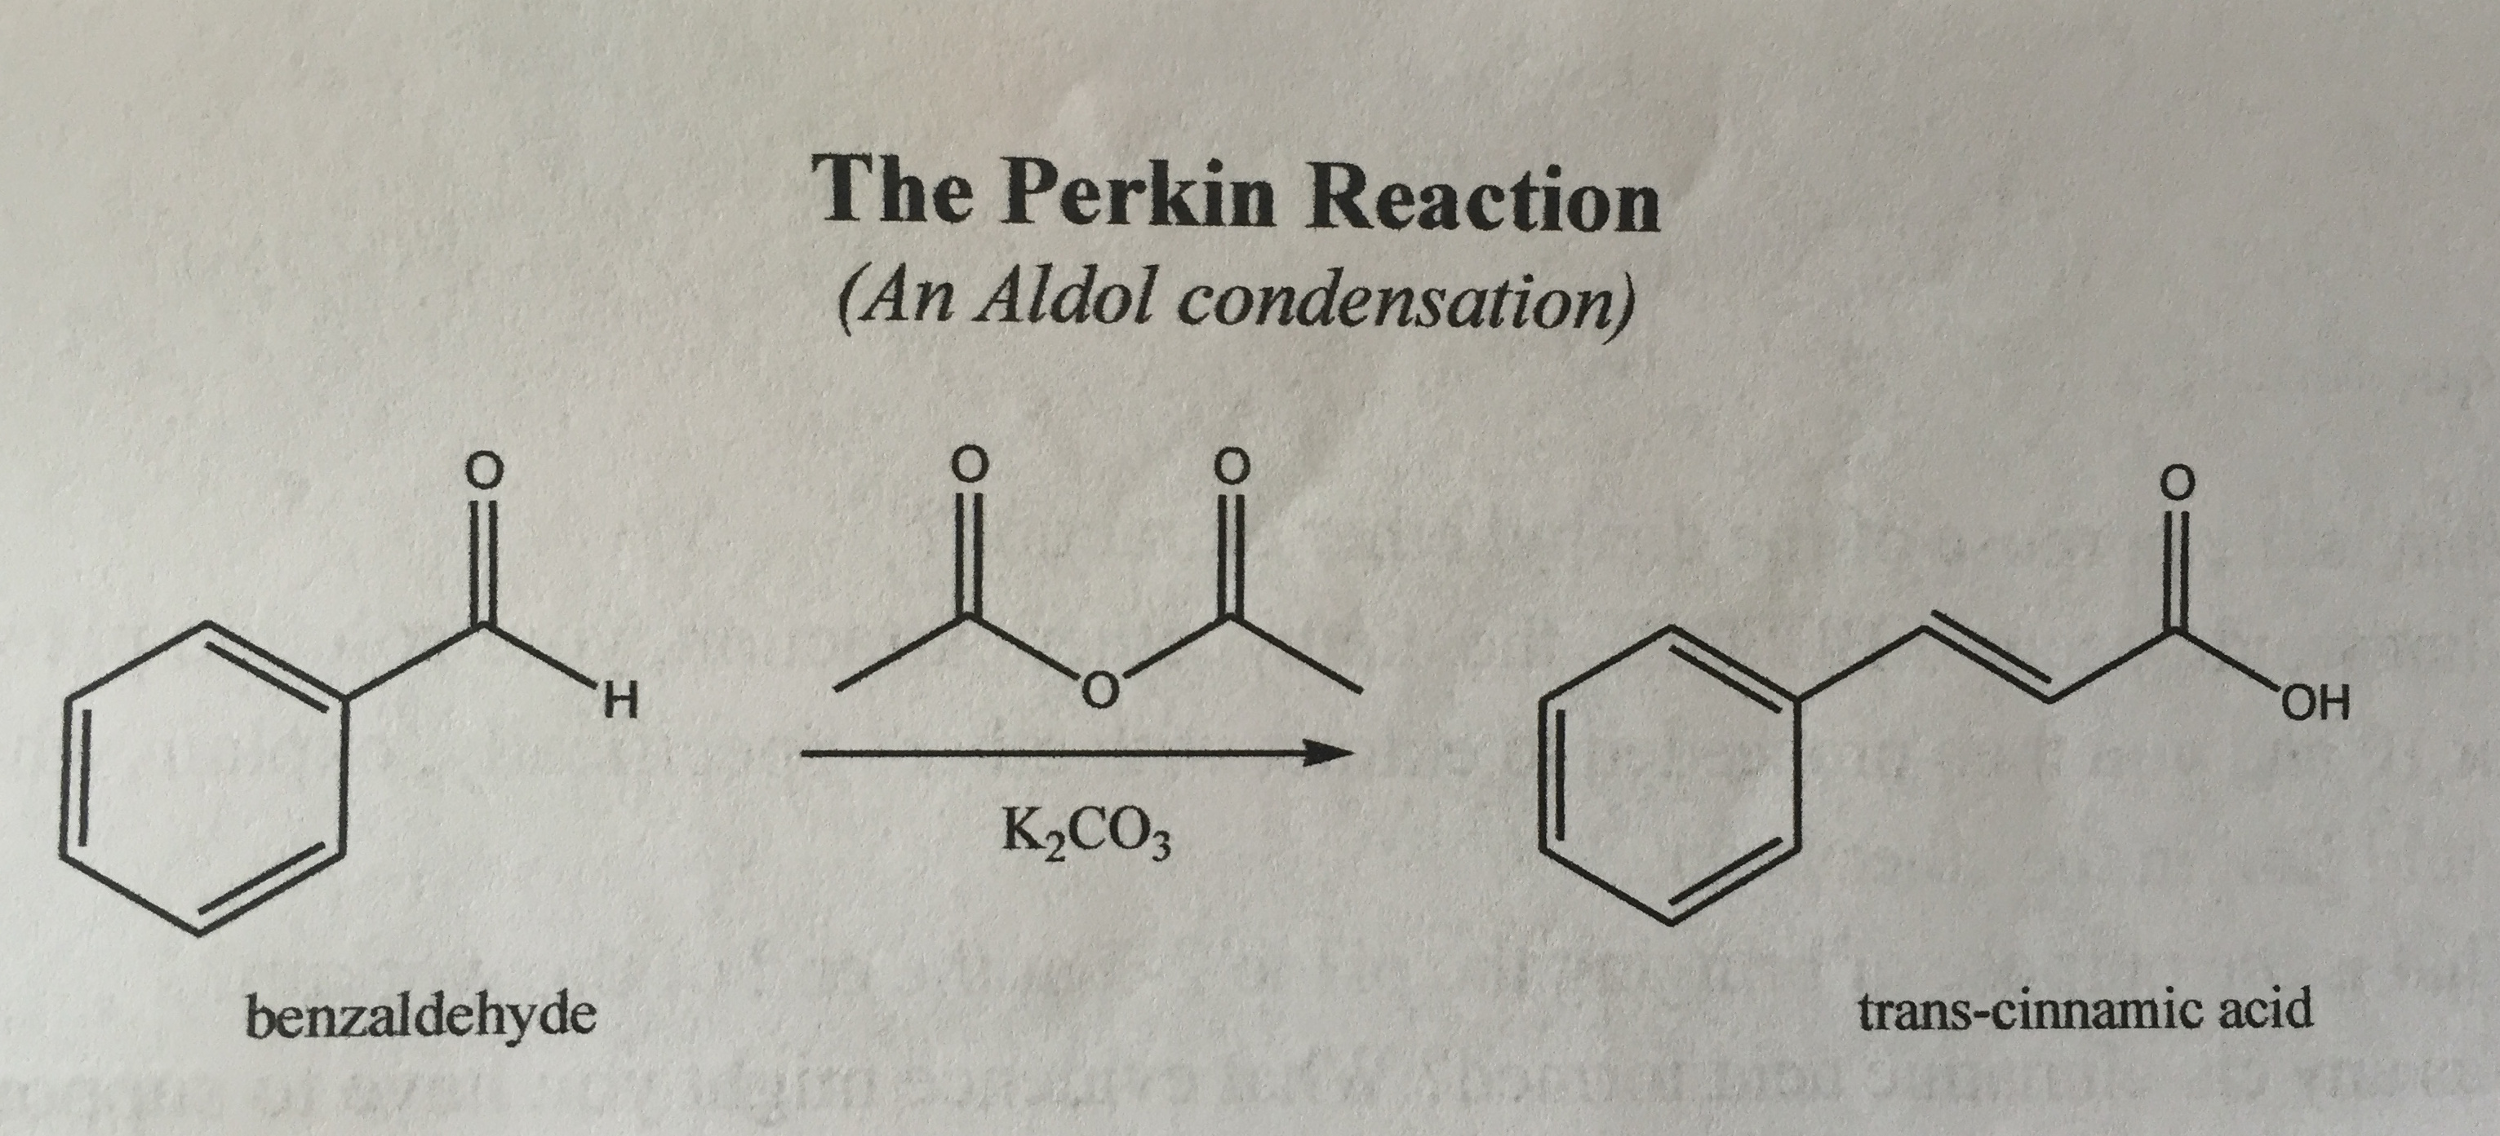 perkin reaction synthesis of phenylcinnamic acid Stilbenes preparation and analysis perkin reaction formation of hydroxystilbenes in lieu of a-phenylcinnamic acid reveals an interesting.